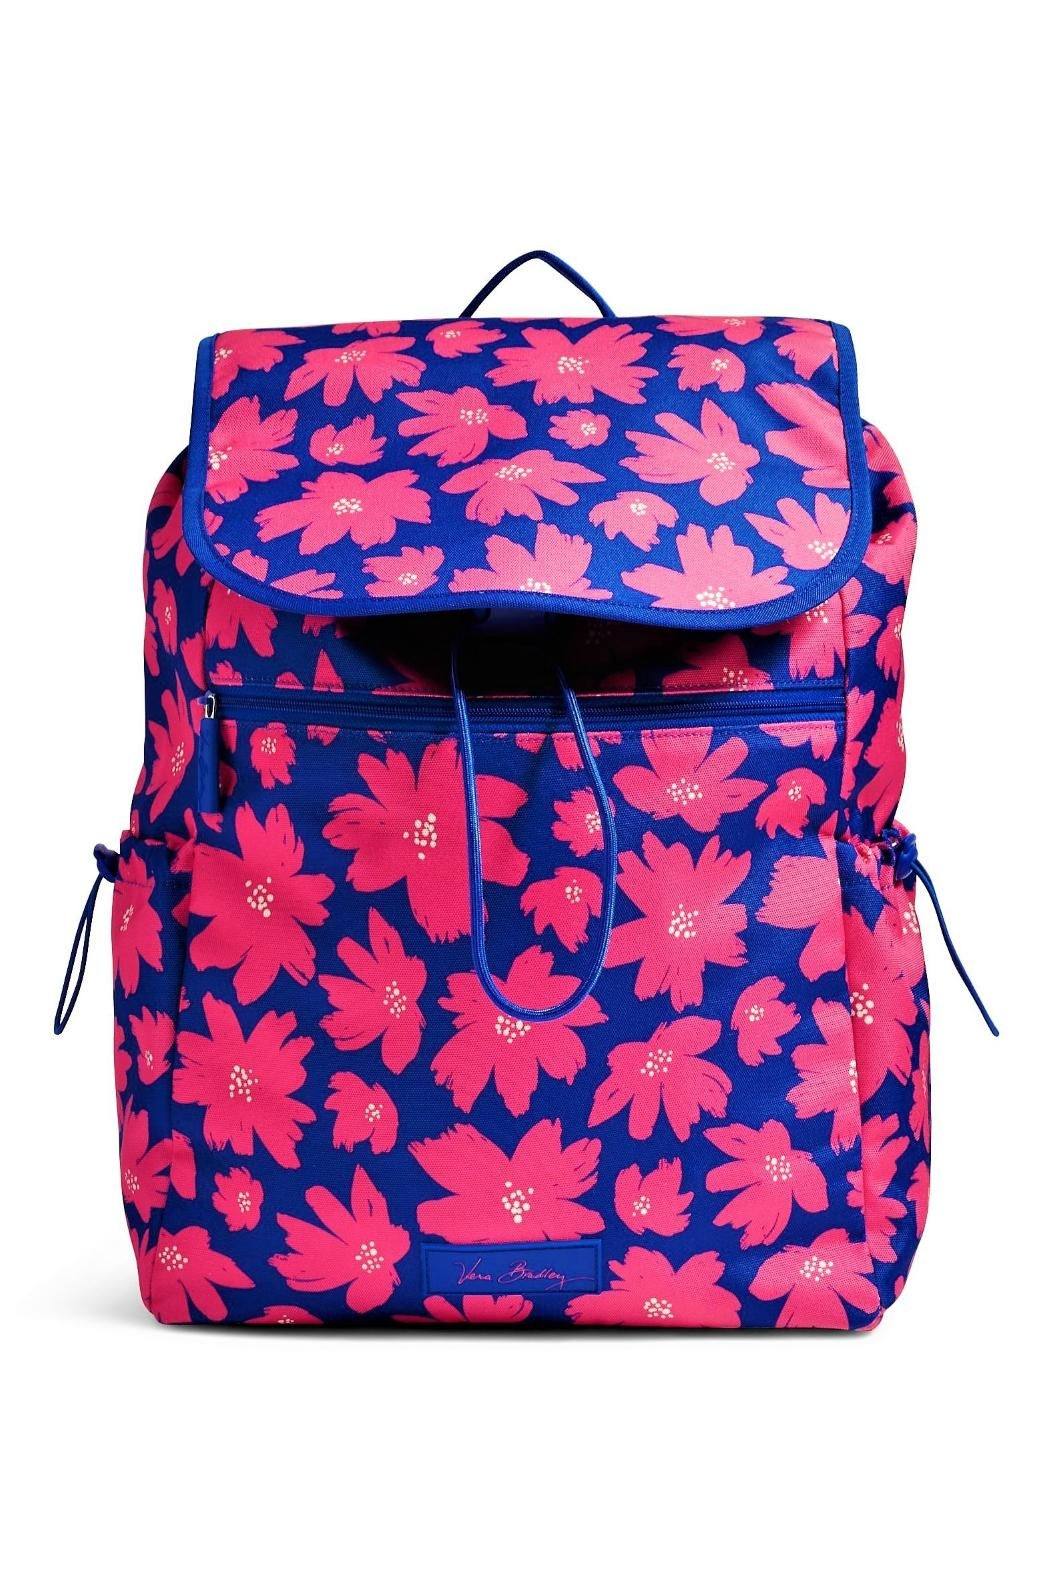 Vera Bradley Art Poppies Drawstring Backpack - Front Cropped Image